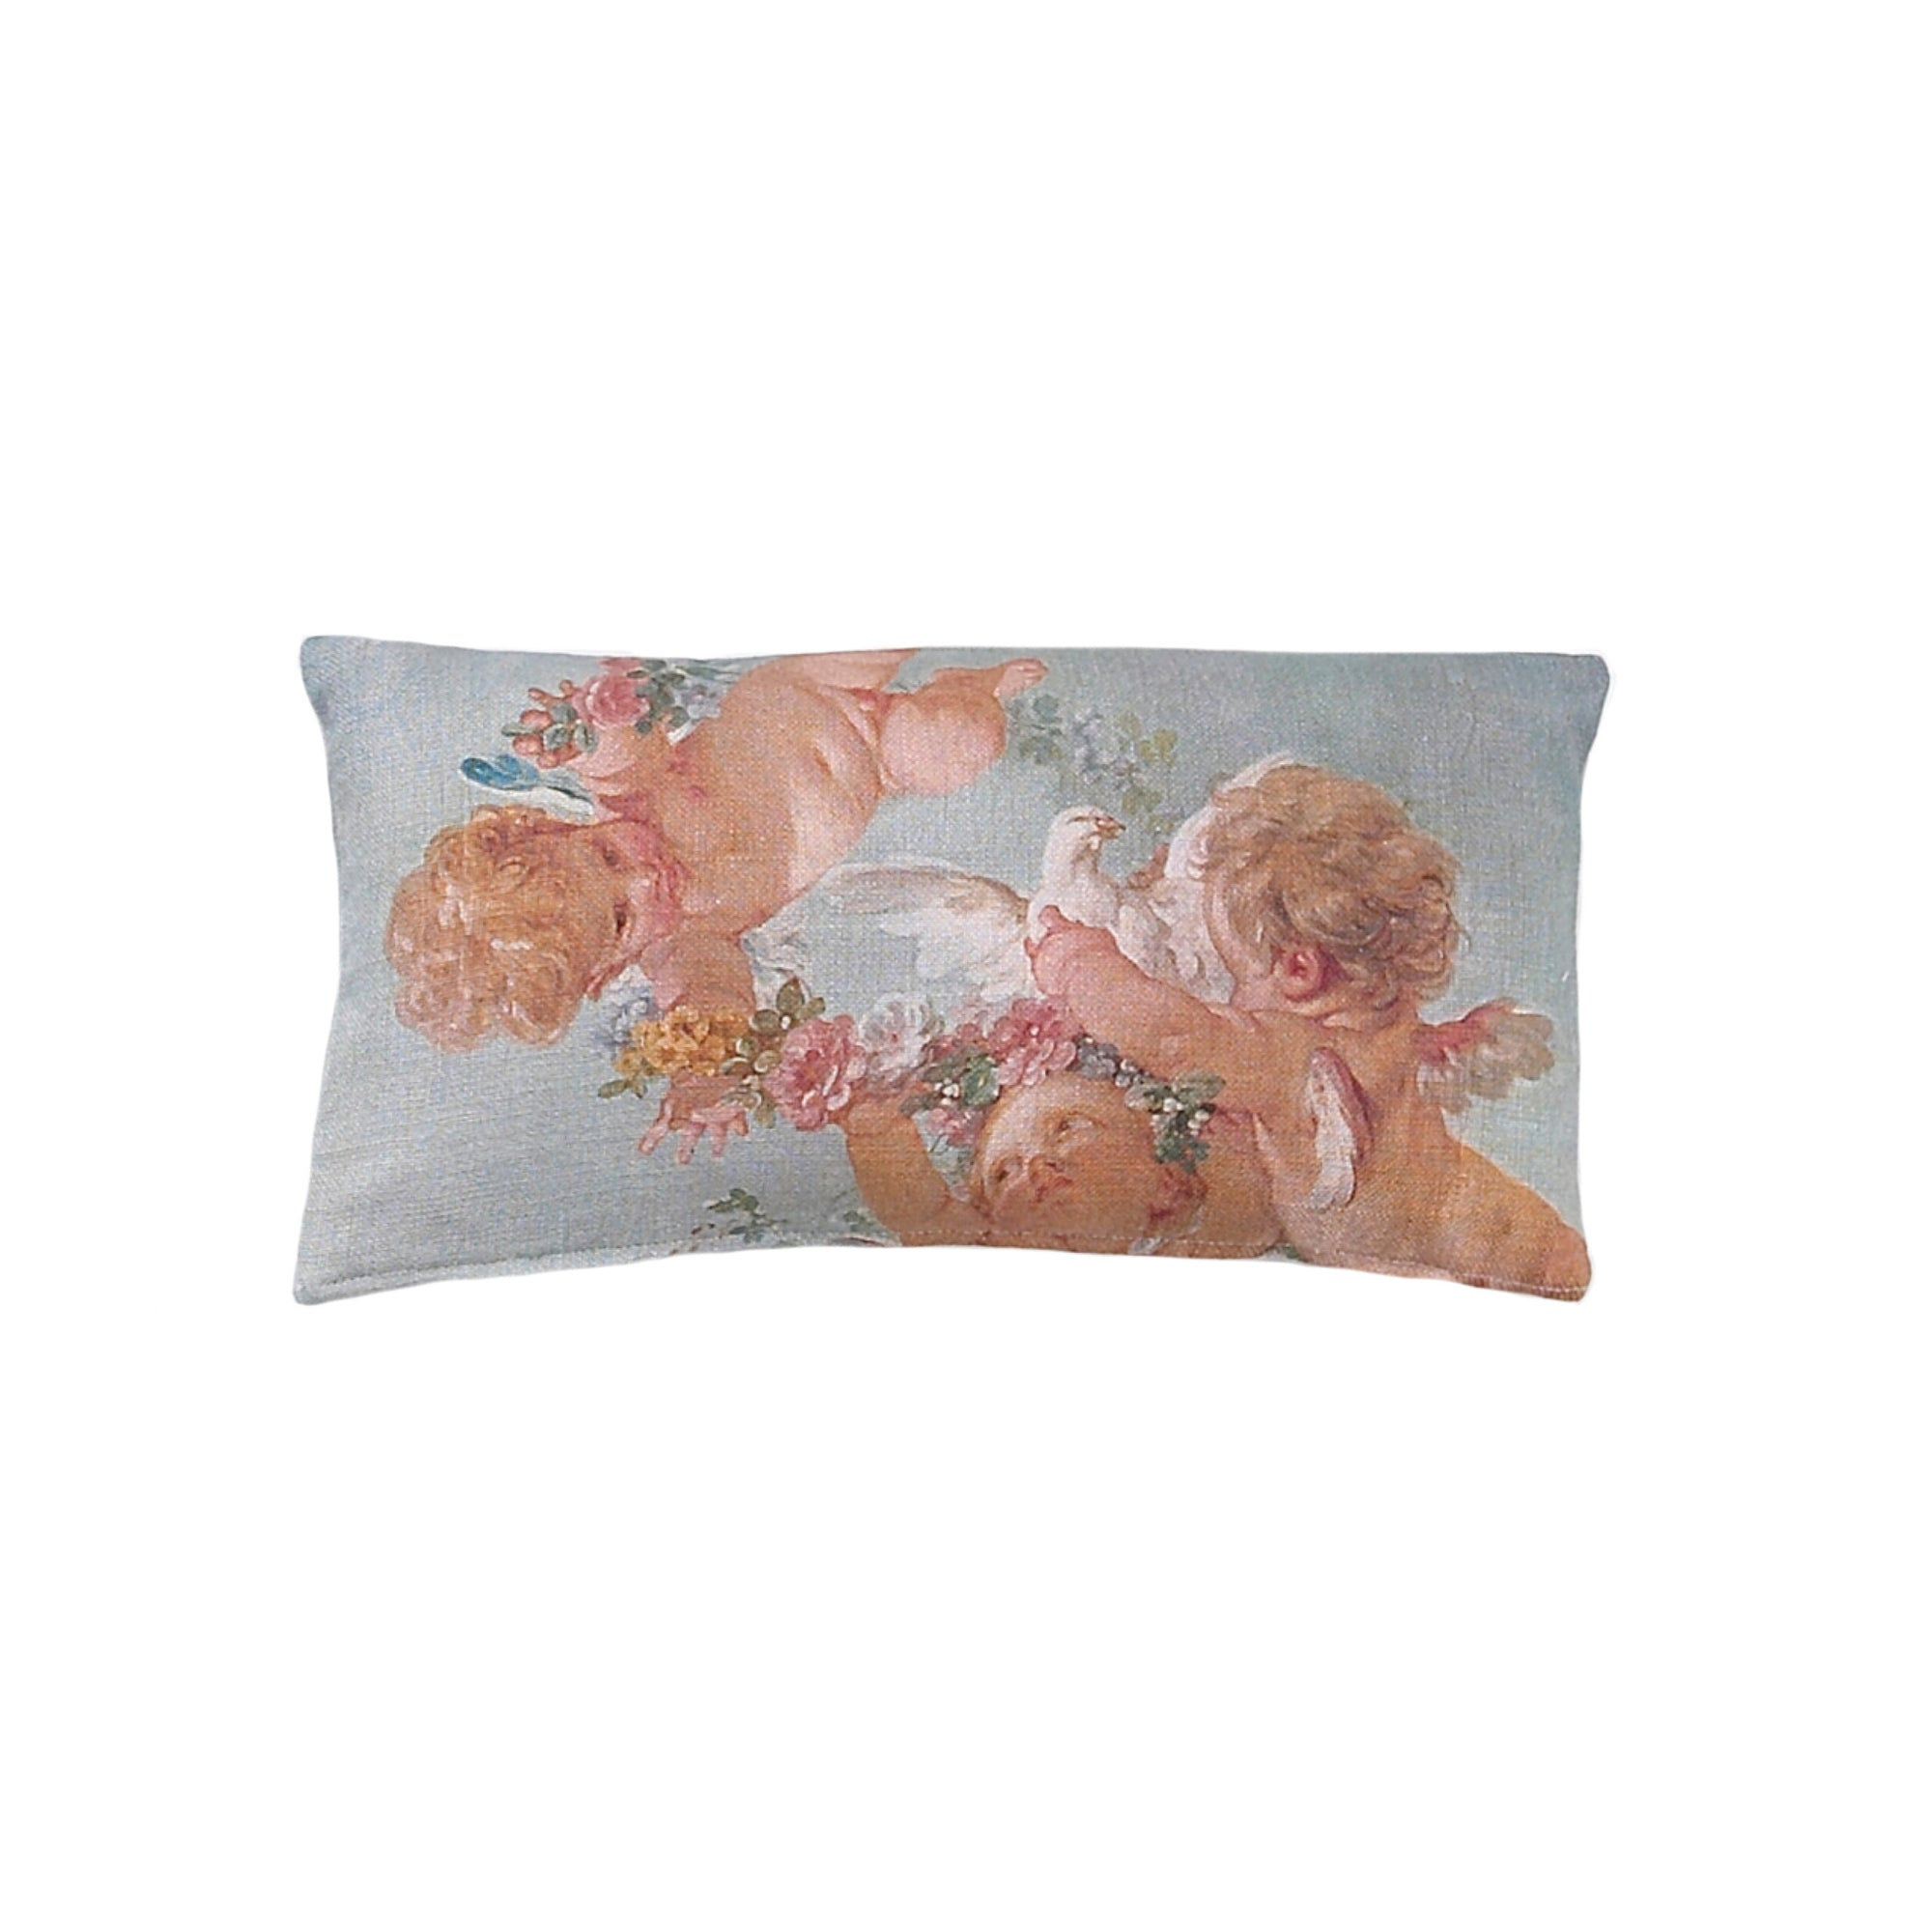 Cherub Cushion 40cm x 22cm, B&C-Boho & Co, Putti Fine Furnishings